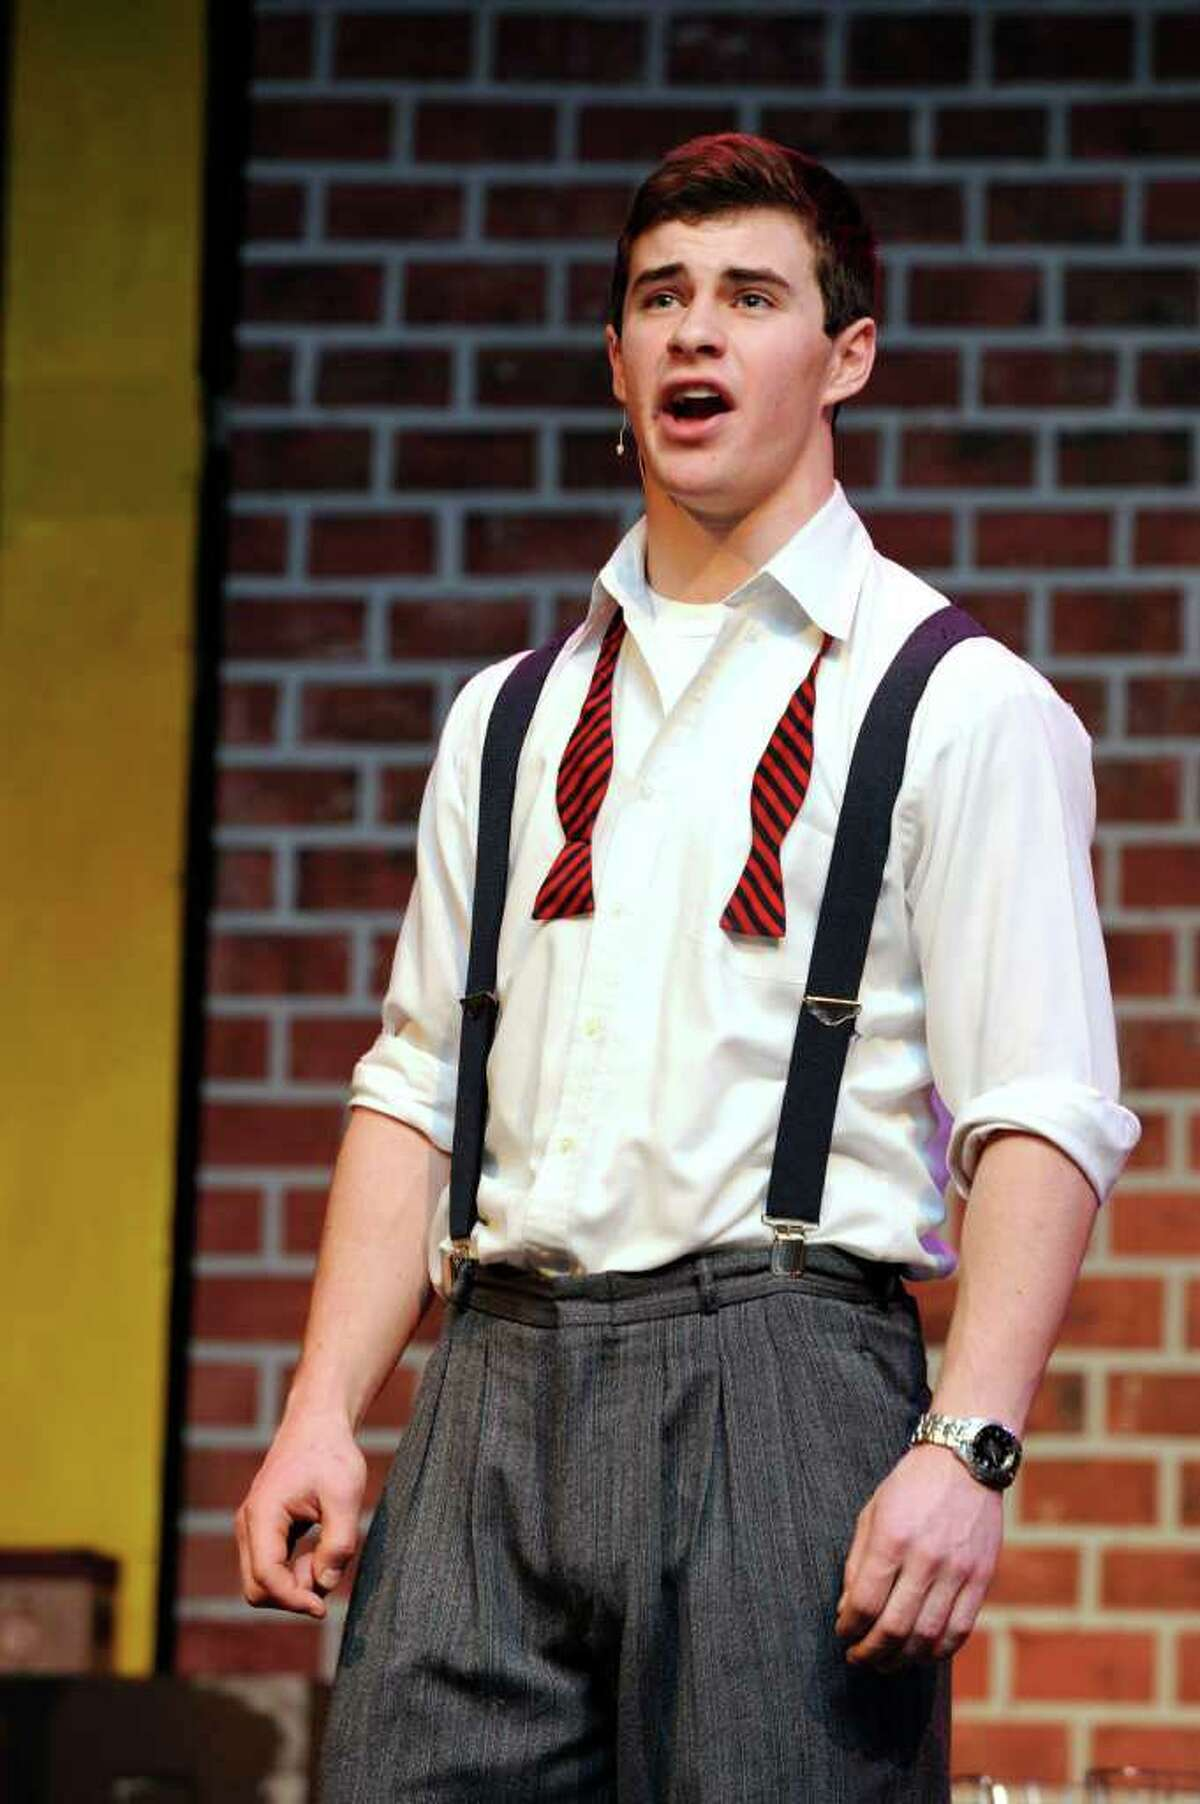 """Sam Gravitte plays Sid Sorokin in Ridgefield High School's production of the """"The Pajama Game."""" The play will be performed March 9, 10, 16 and 17. Photo taken Friday, March 2, 2012."""